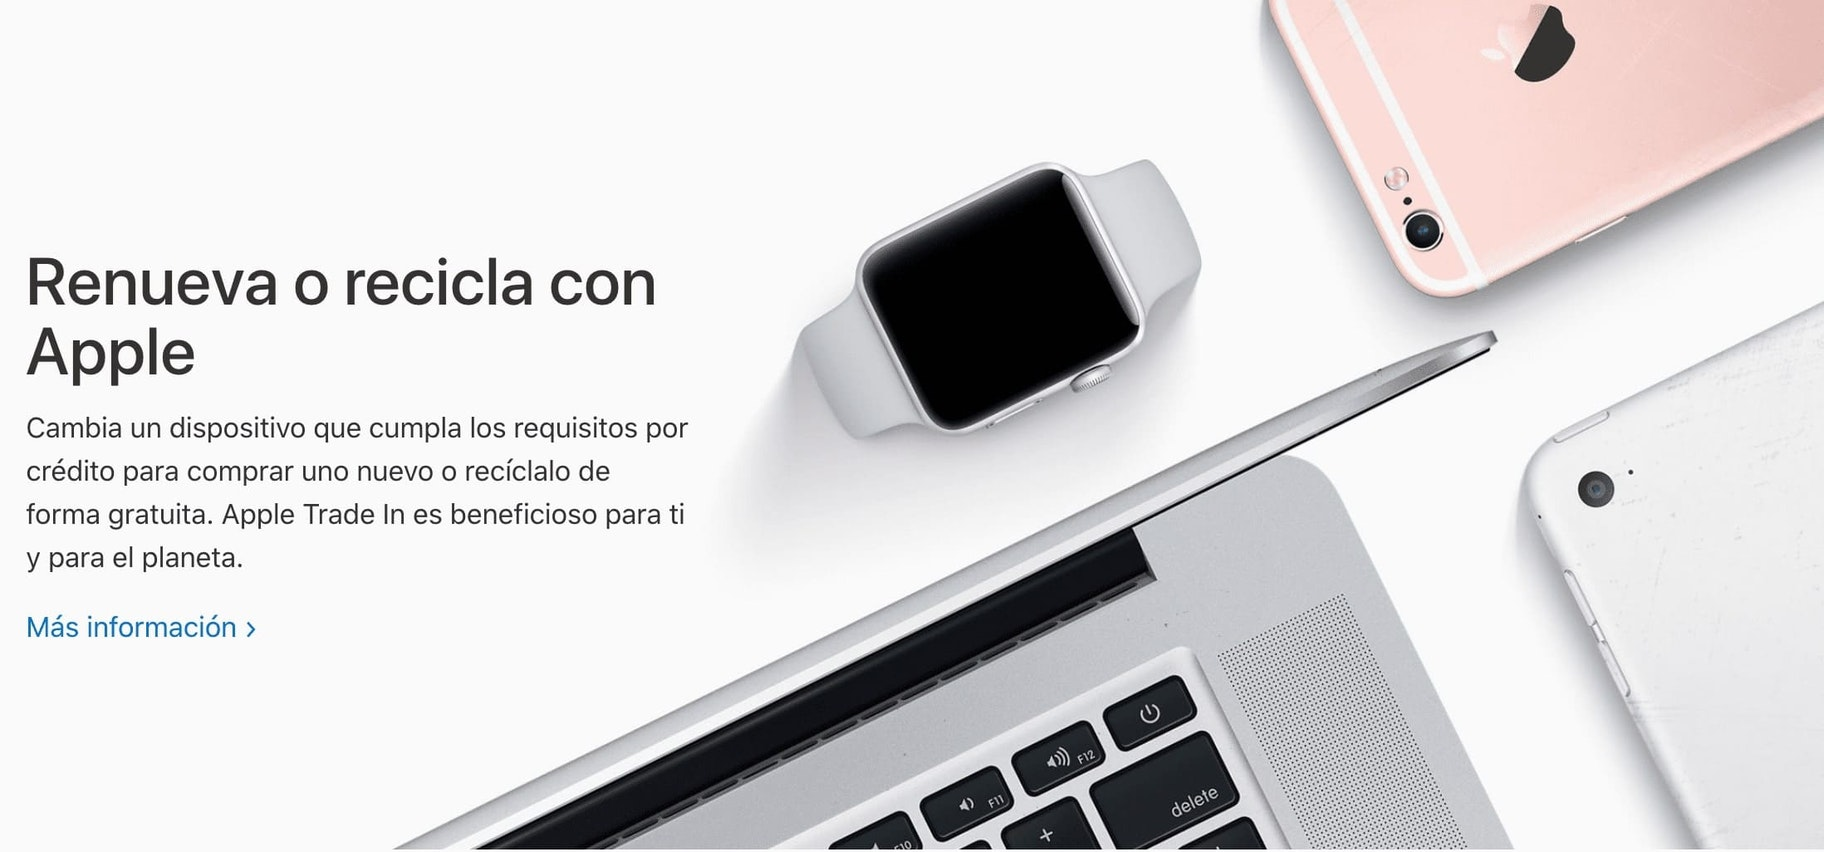 Psciologia del color gris - apple